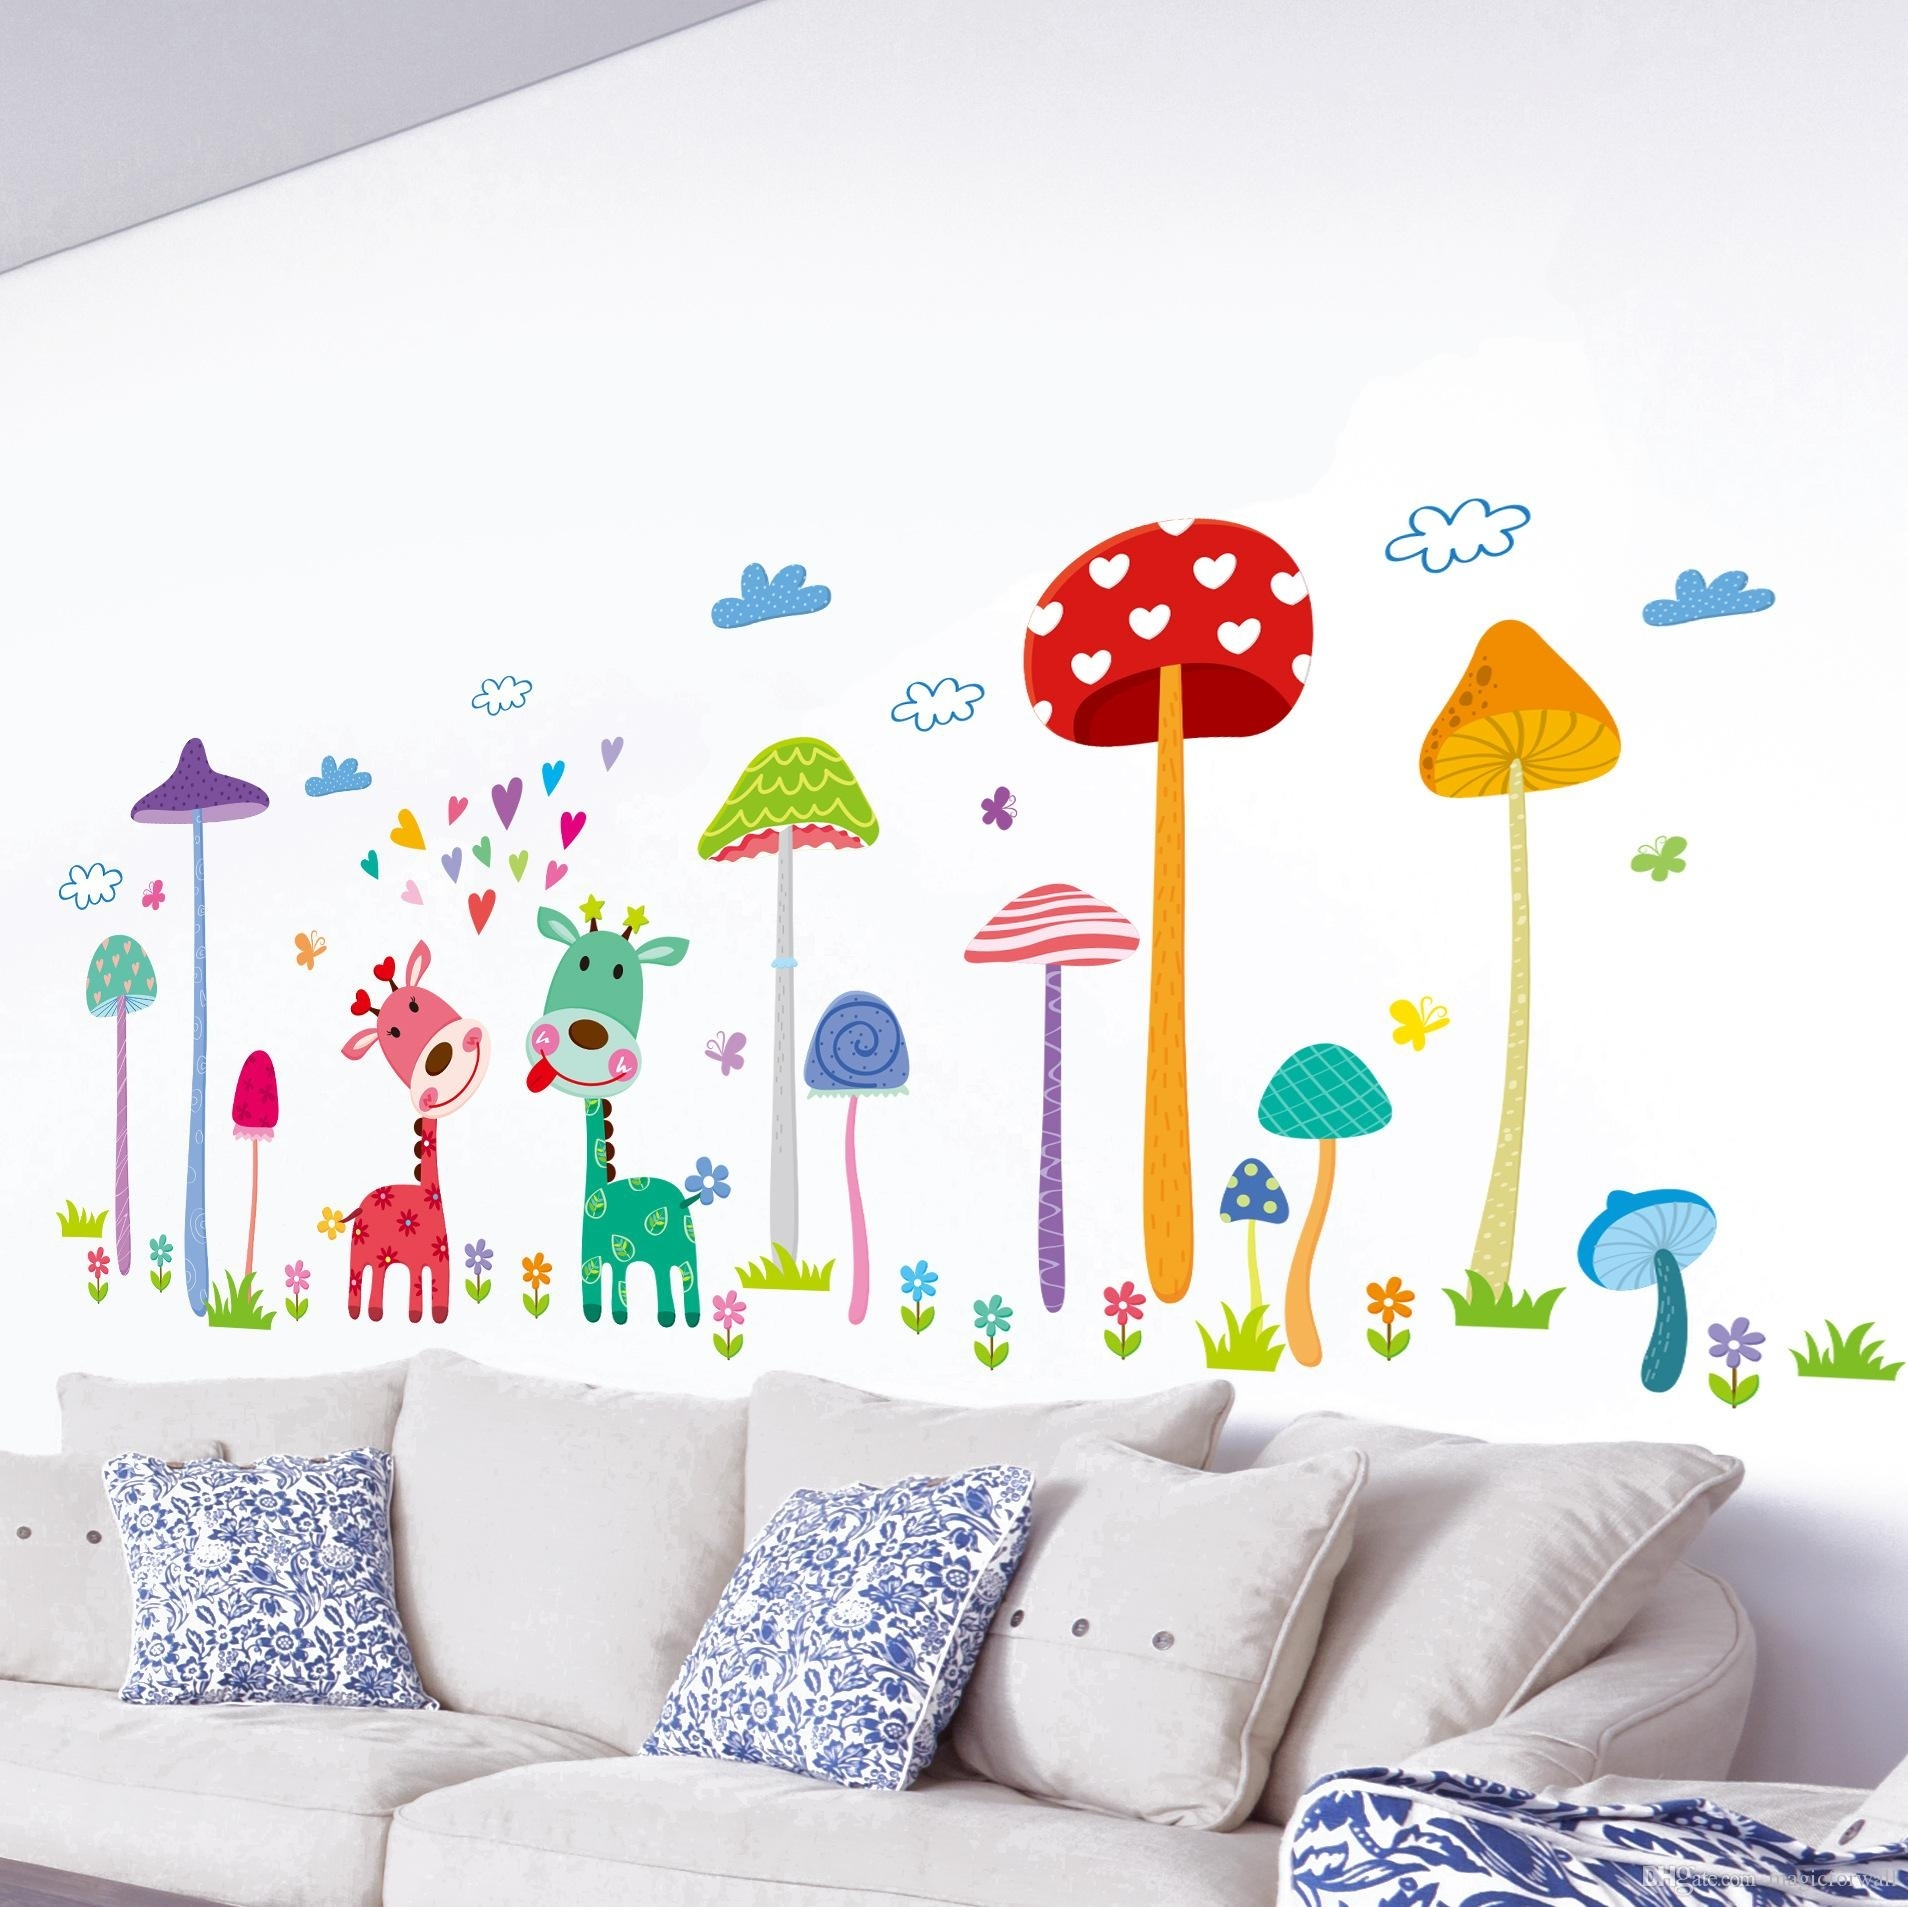 Forest Mushroom Deer Animals Home Wall Art Mural Decor Kids Babies Within Most Current Wall Art Decors (Gallery 15 of 15)